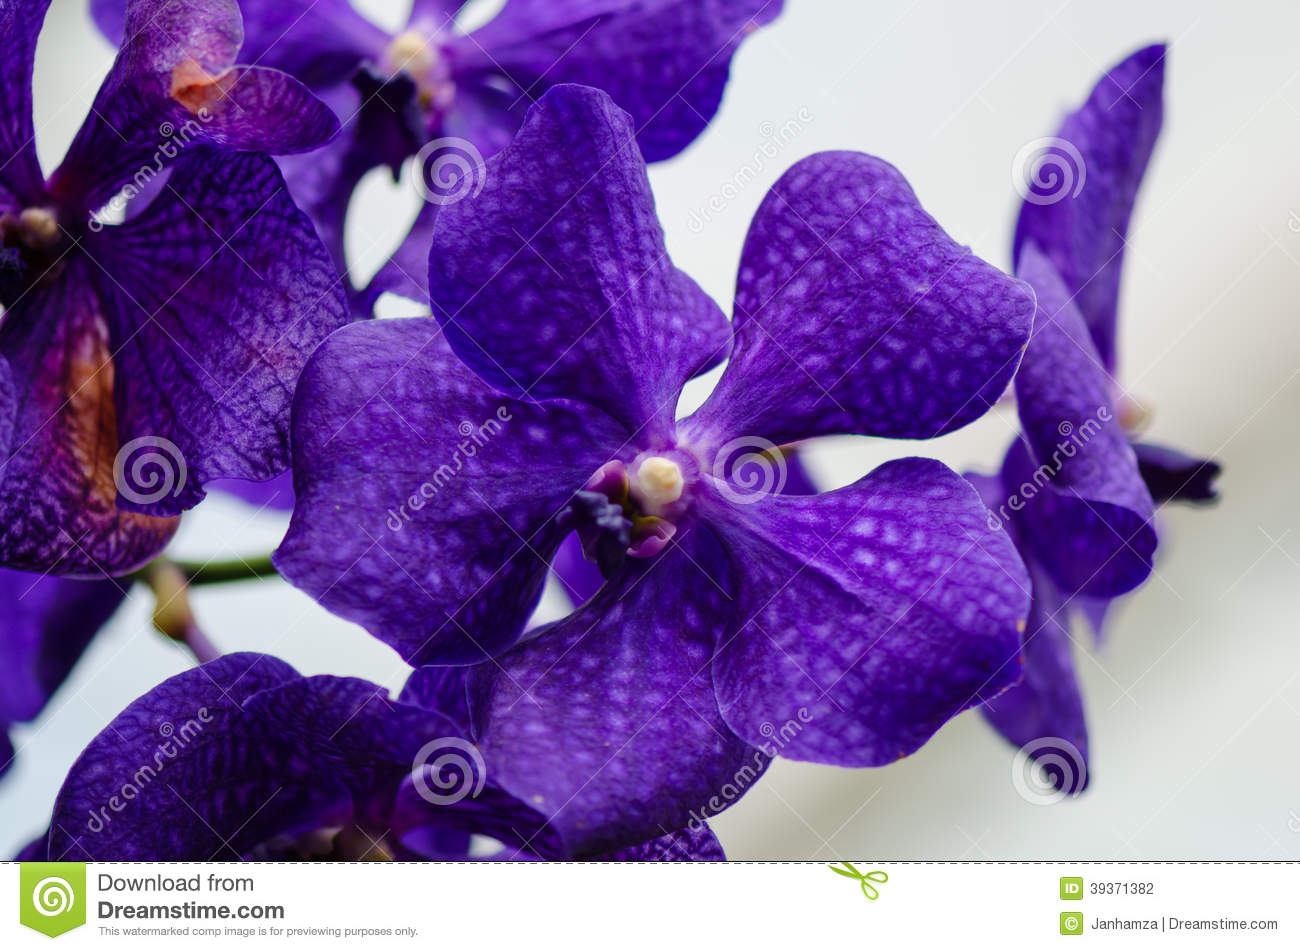 Eletragesi blue and purple orchid flower images blue and purple orchid flower izmirmasajfo